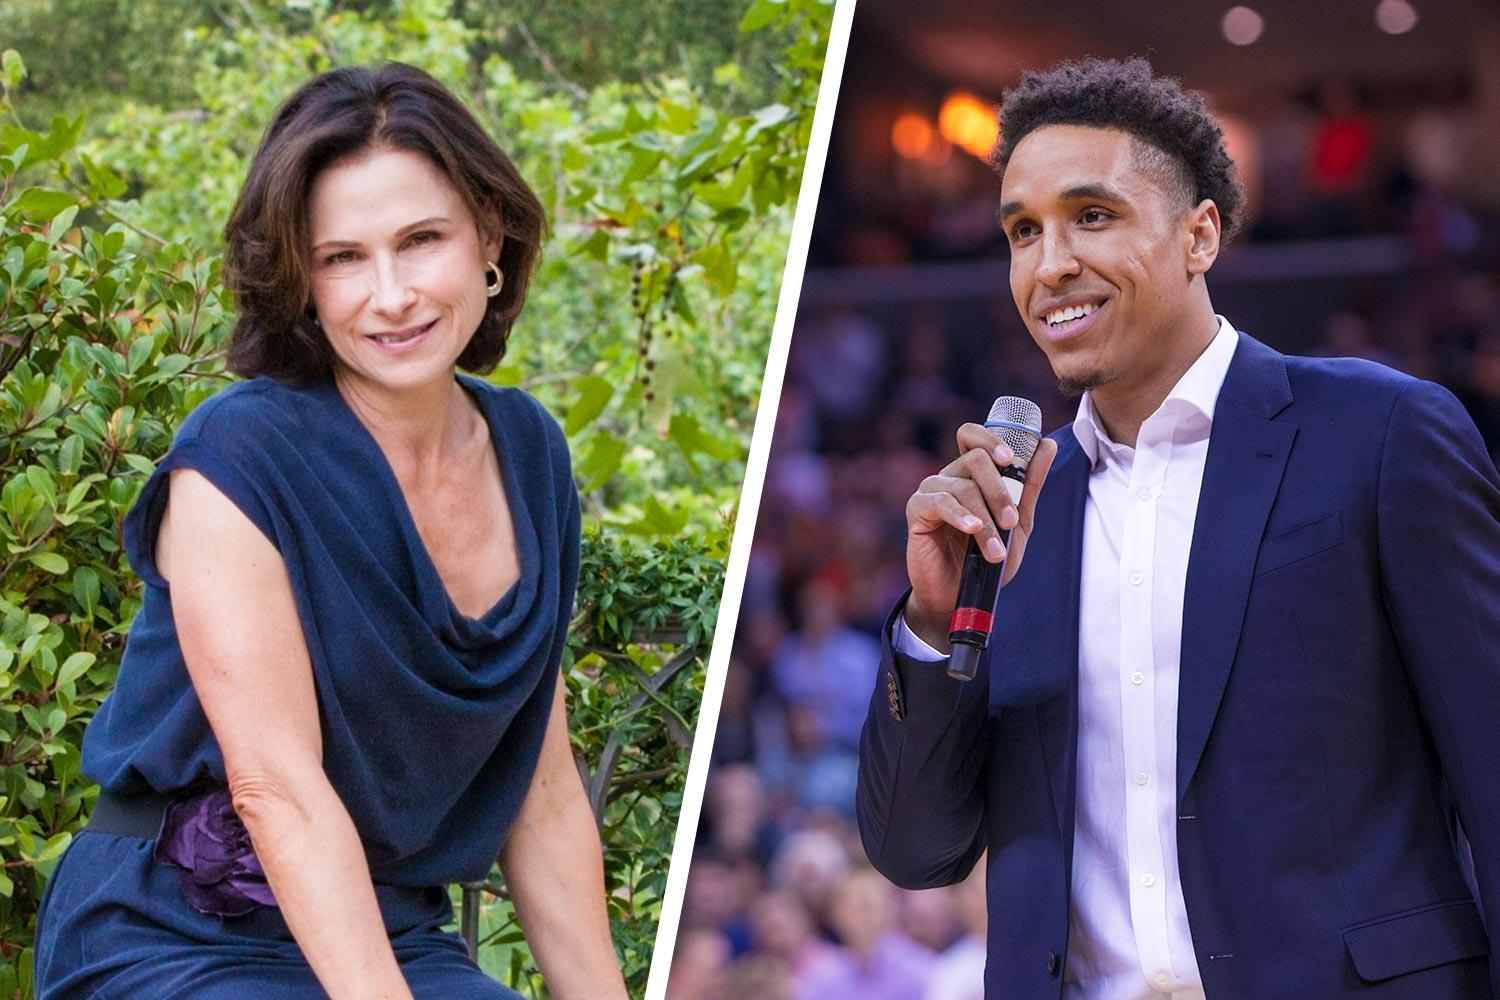 Alumni Martha Karsh and Malcolm Brogdon will play key roles in advancing UVA's campaign, which begins its public phase next fall.